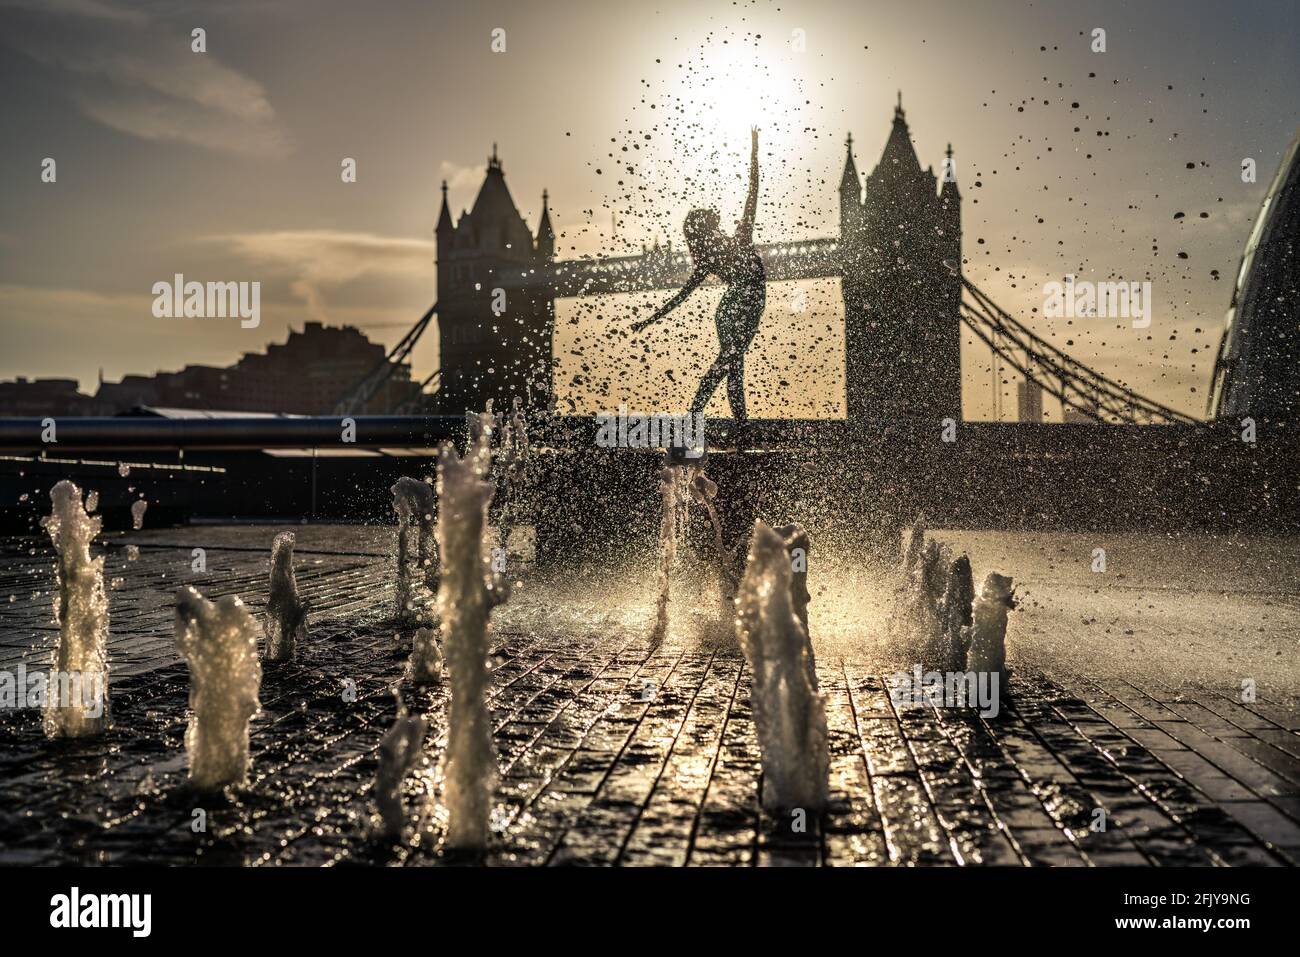 London, UK. 27th April 2021. International Dance Day: Rebecca Olarescu, a Masters screendance student at the London Contemporary Dance School (LCDS), performs during a dramatic sunrise at the fountains near Tower Bridge ahead of International Dance Day on 29th April. First celebrated in 1982, International Dance Day has taken place every year since in anniversary celebration of the birth of Jean-Georges Noverre (1727-1810), the creator of modern ballet. Credit: Guy Corbishley/Alamy Live News Stock Photo